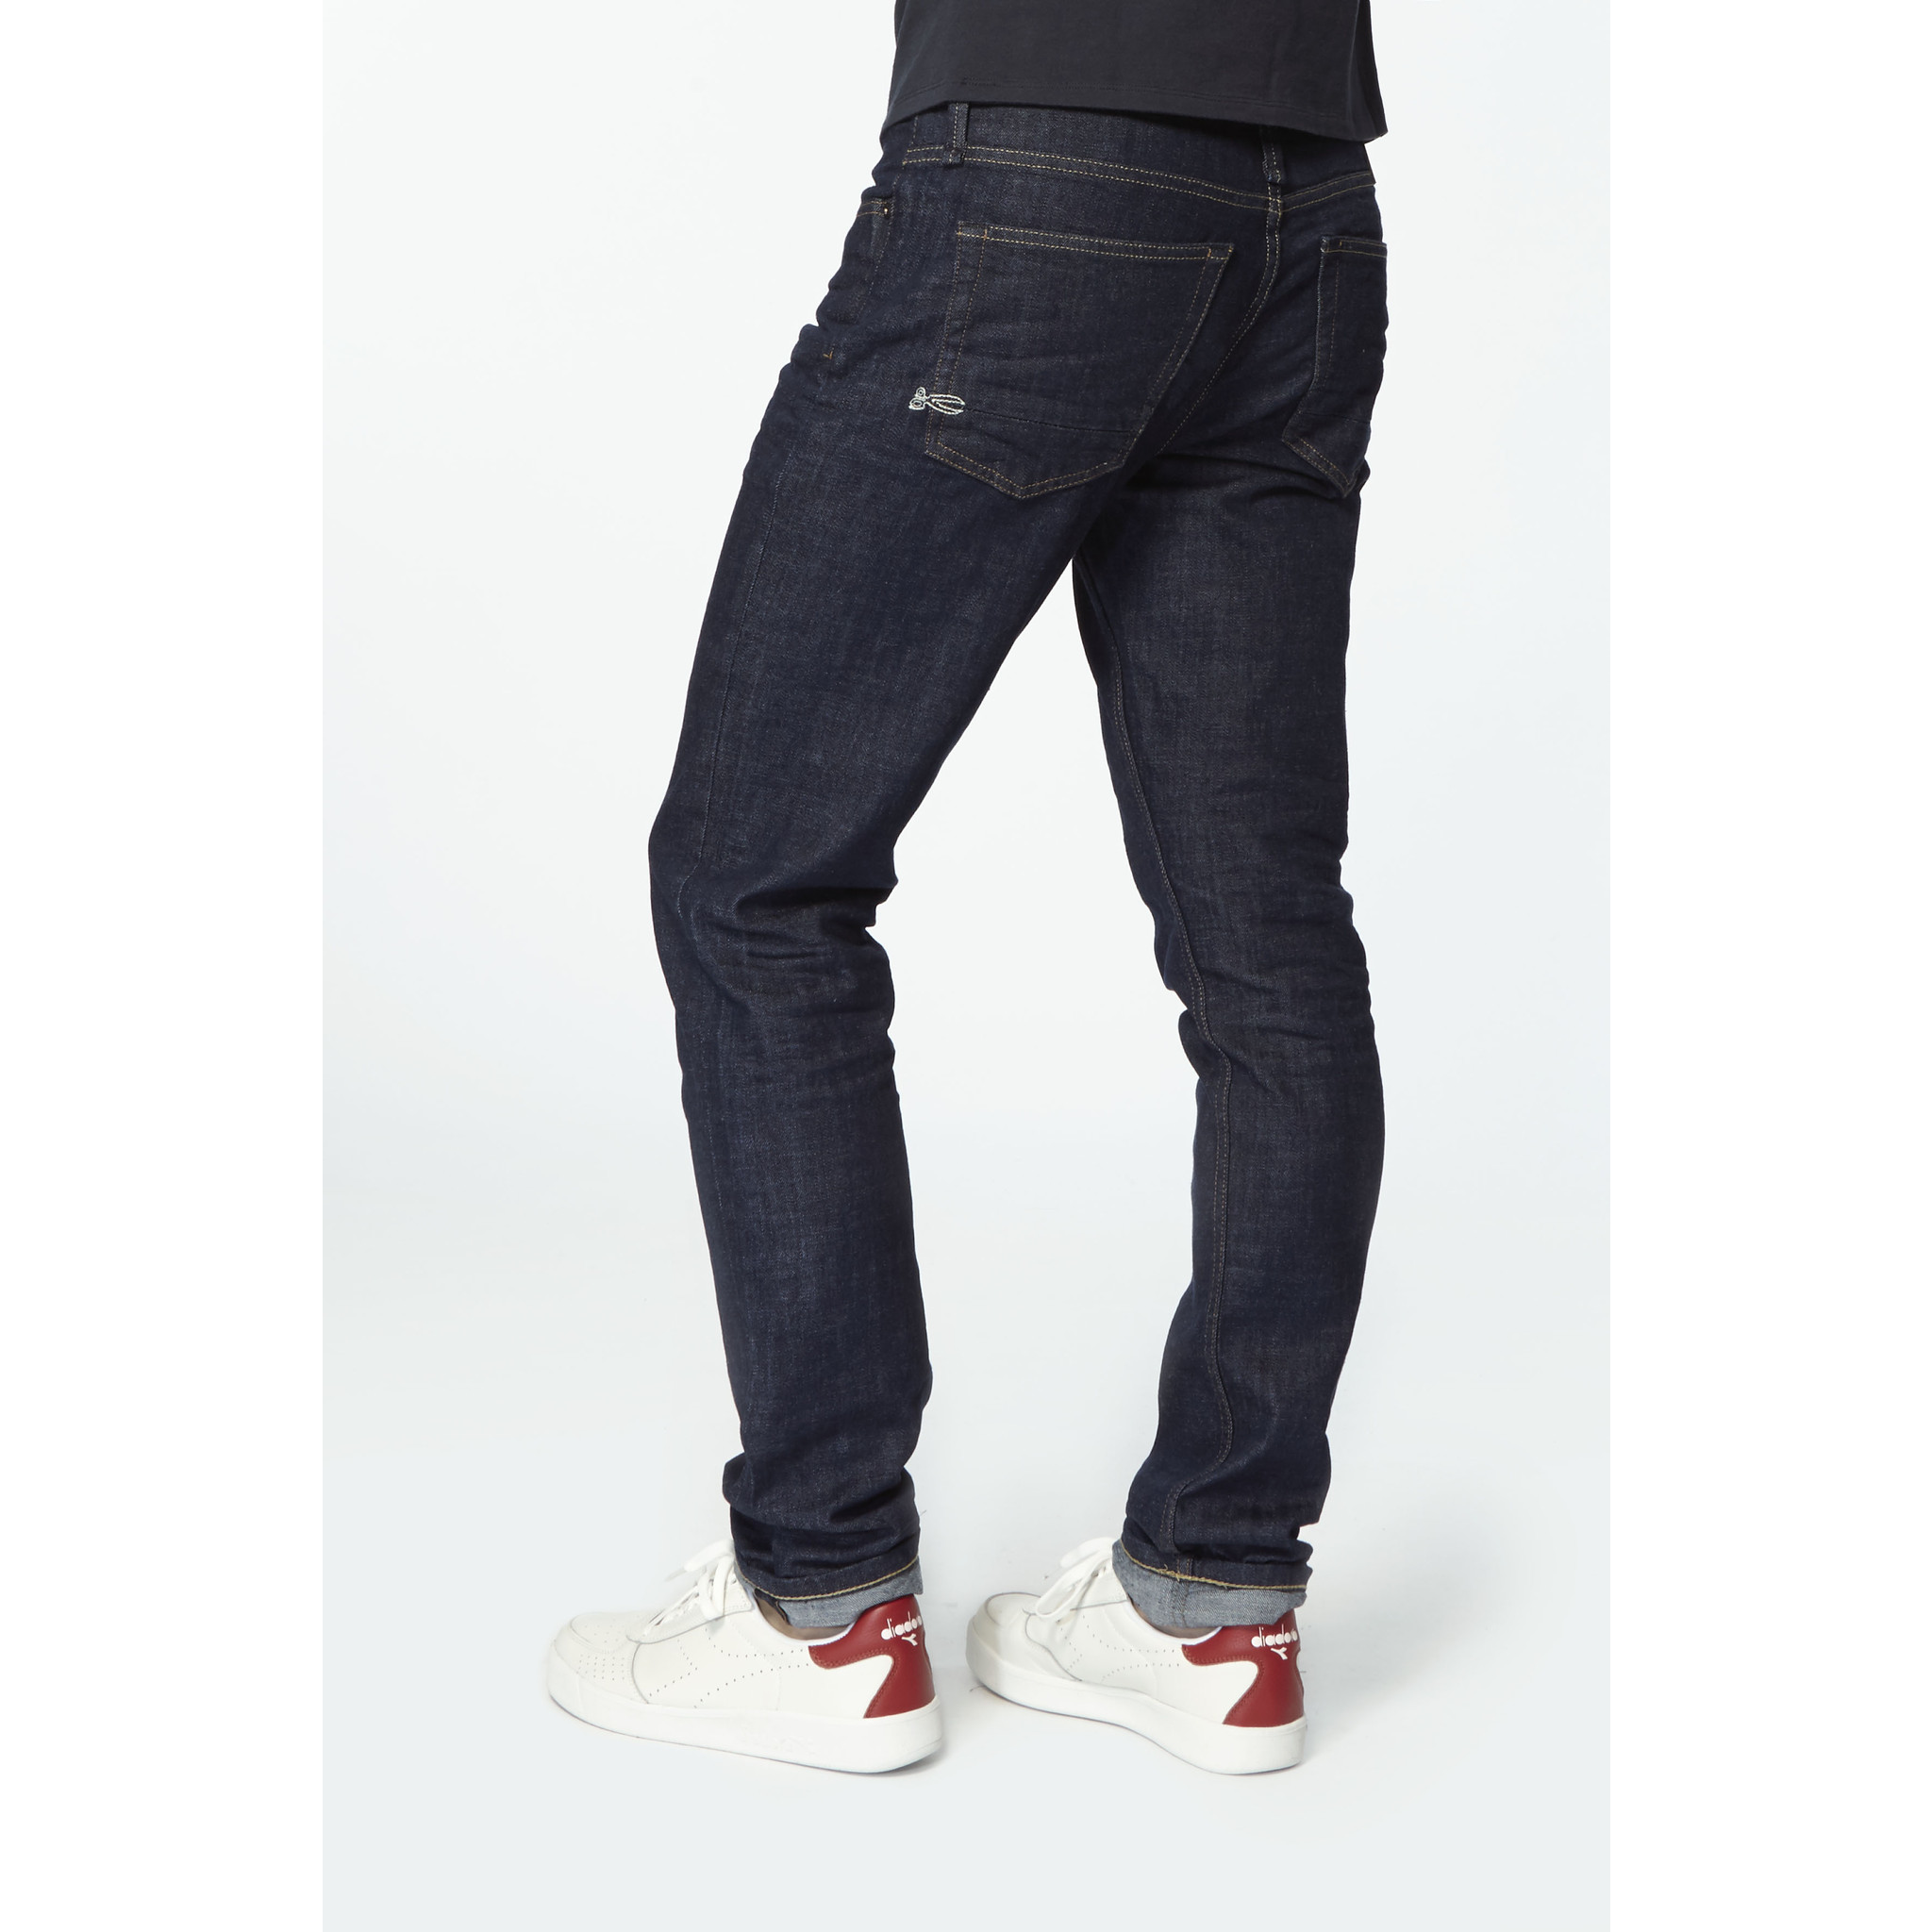 RAZOR SLIM FIT JEANS - 3DAIR